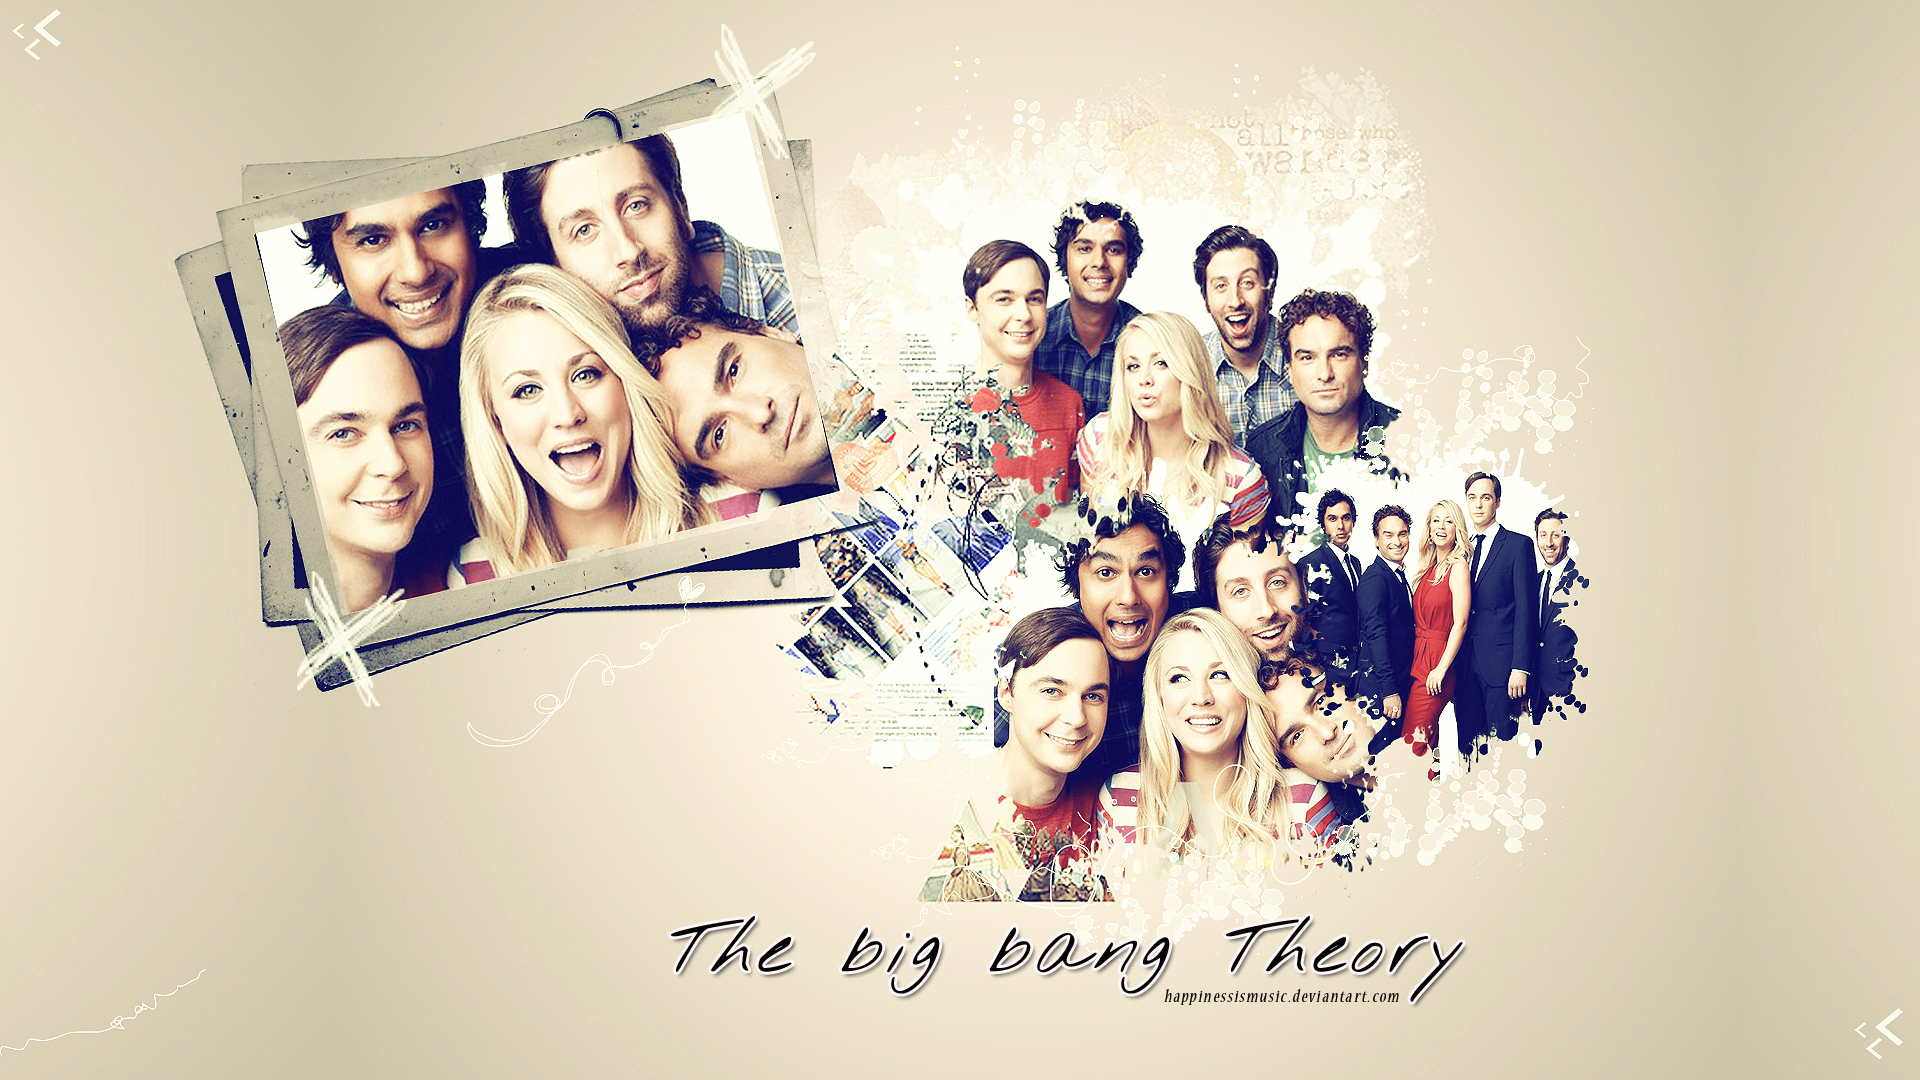 The cast of the big bang theory wallpaper by HappinessIsMusic